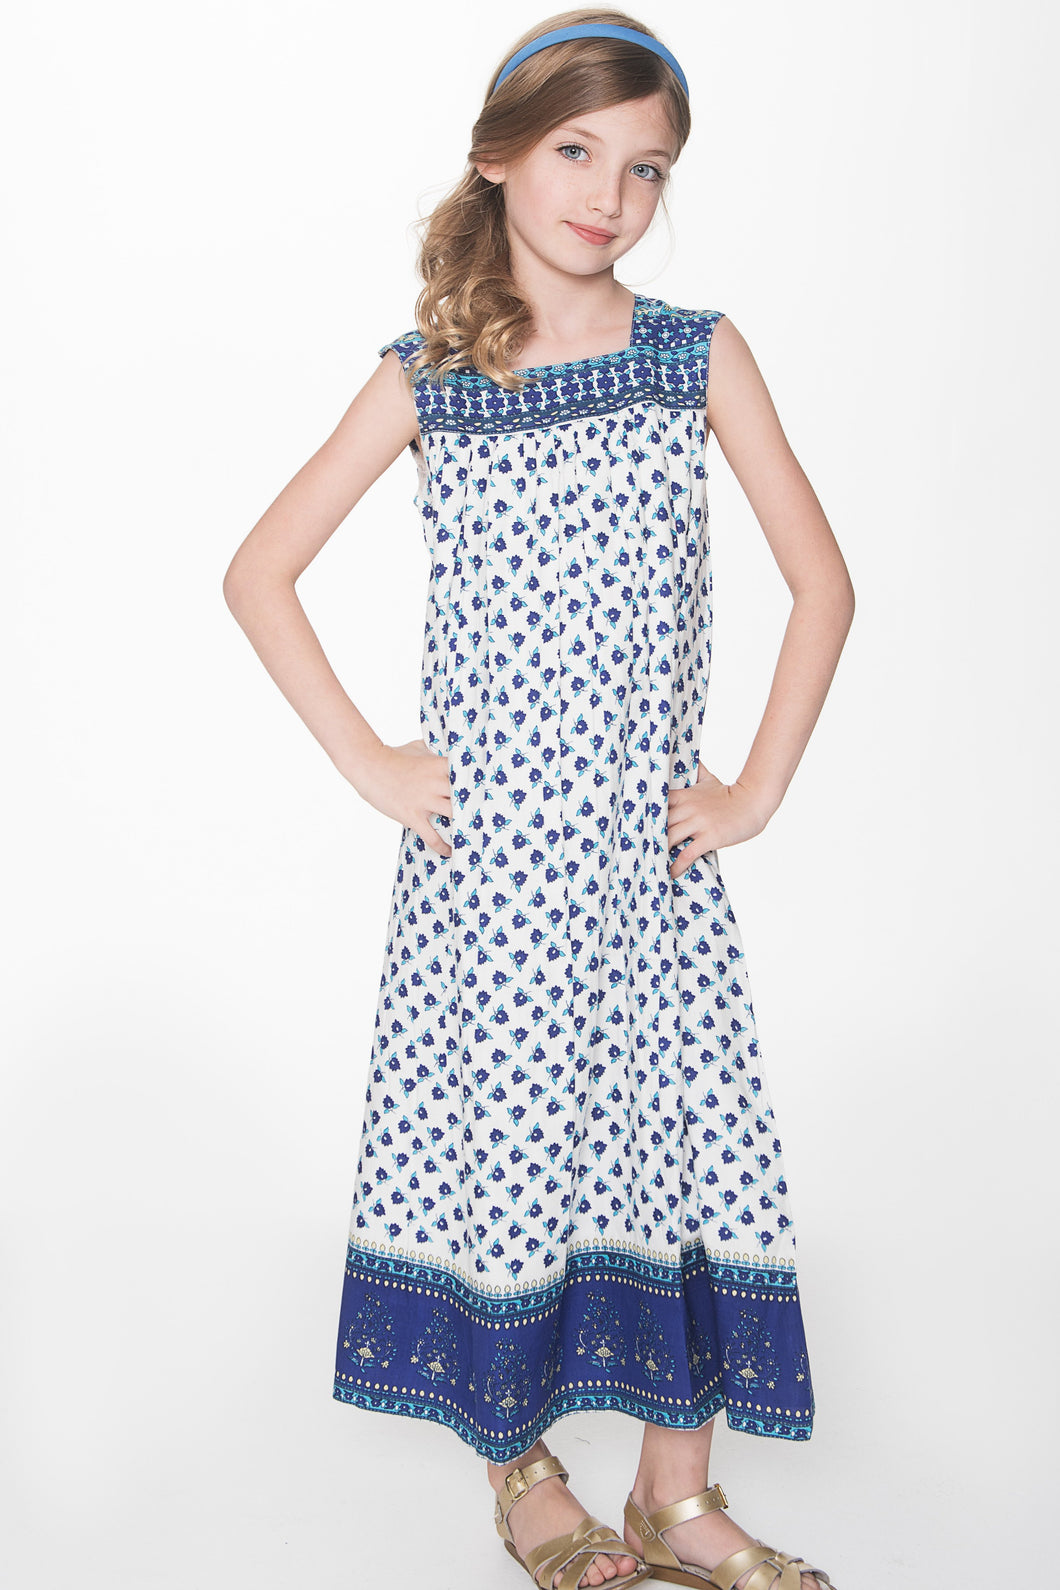 Blue and White Floral Maxi Dress - Kids Clothing, Dress - Girls Dress, Yo Baby Online - Yo Baby